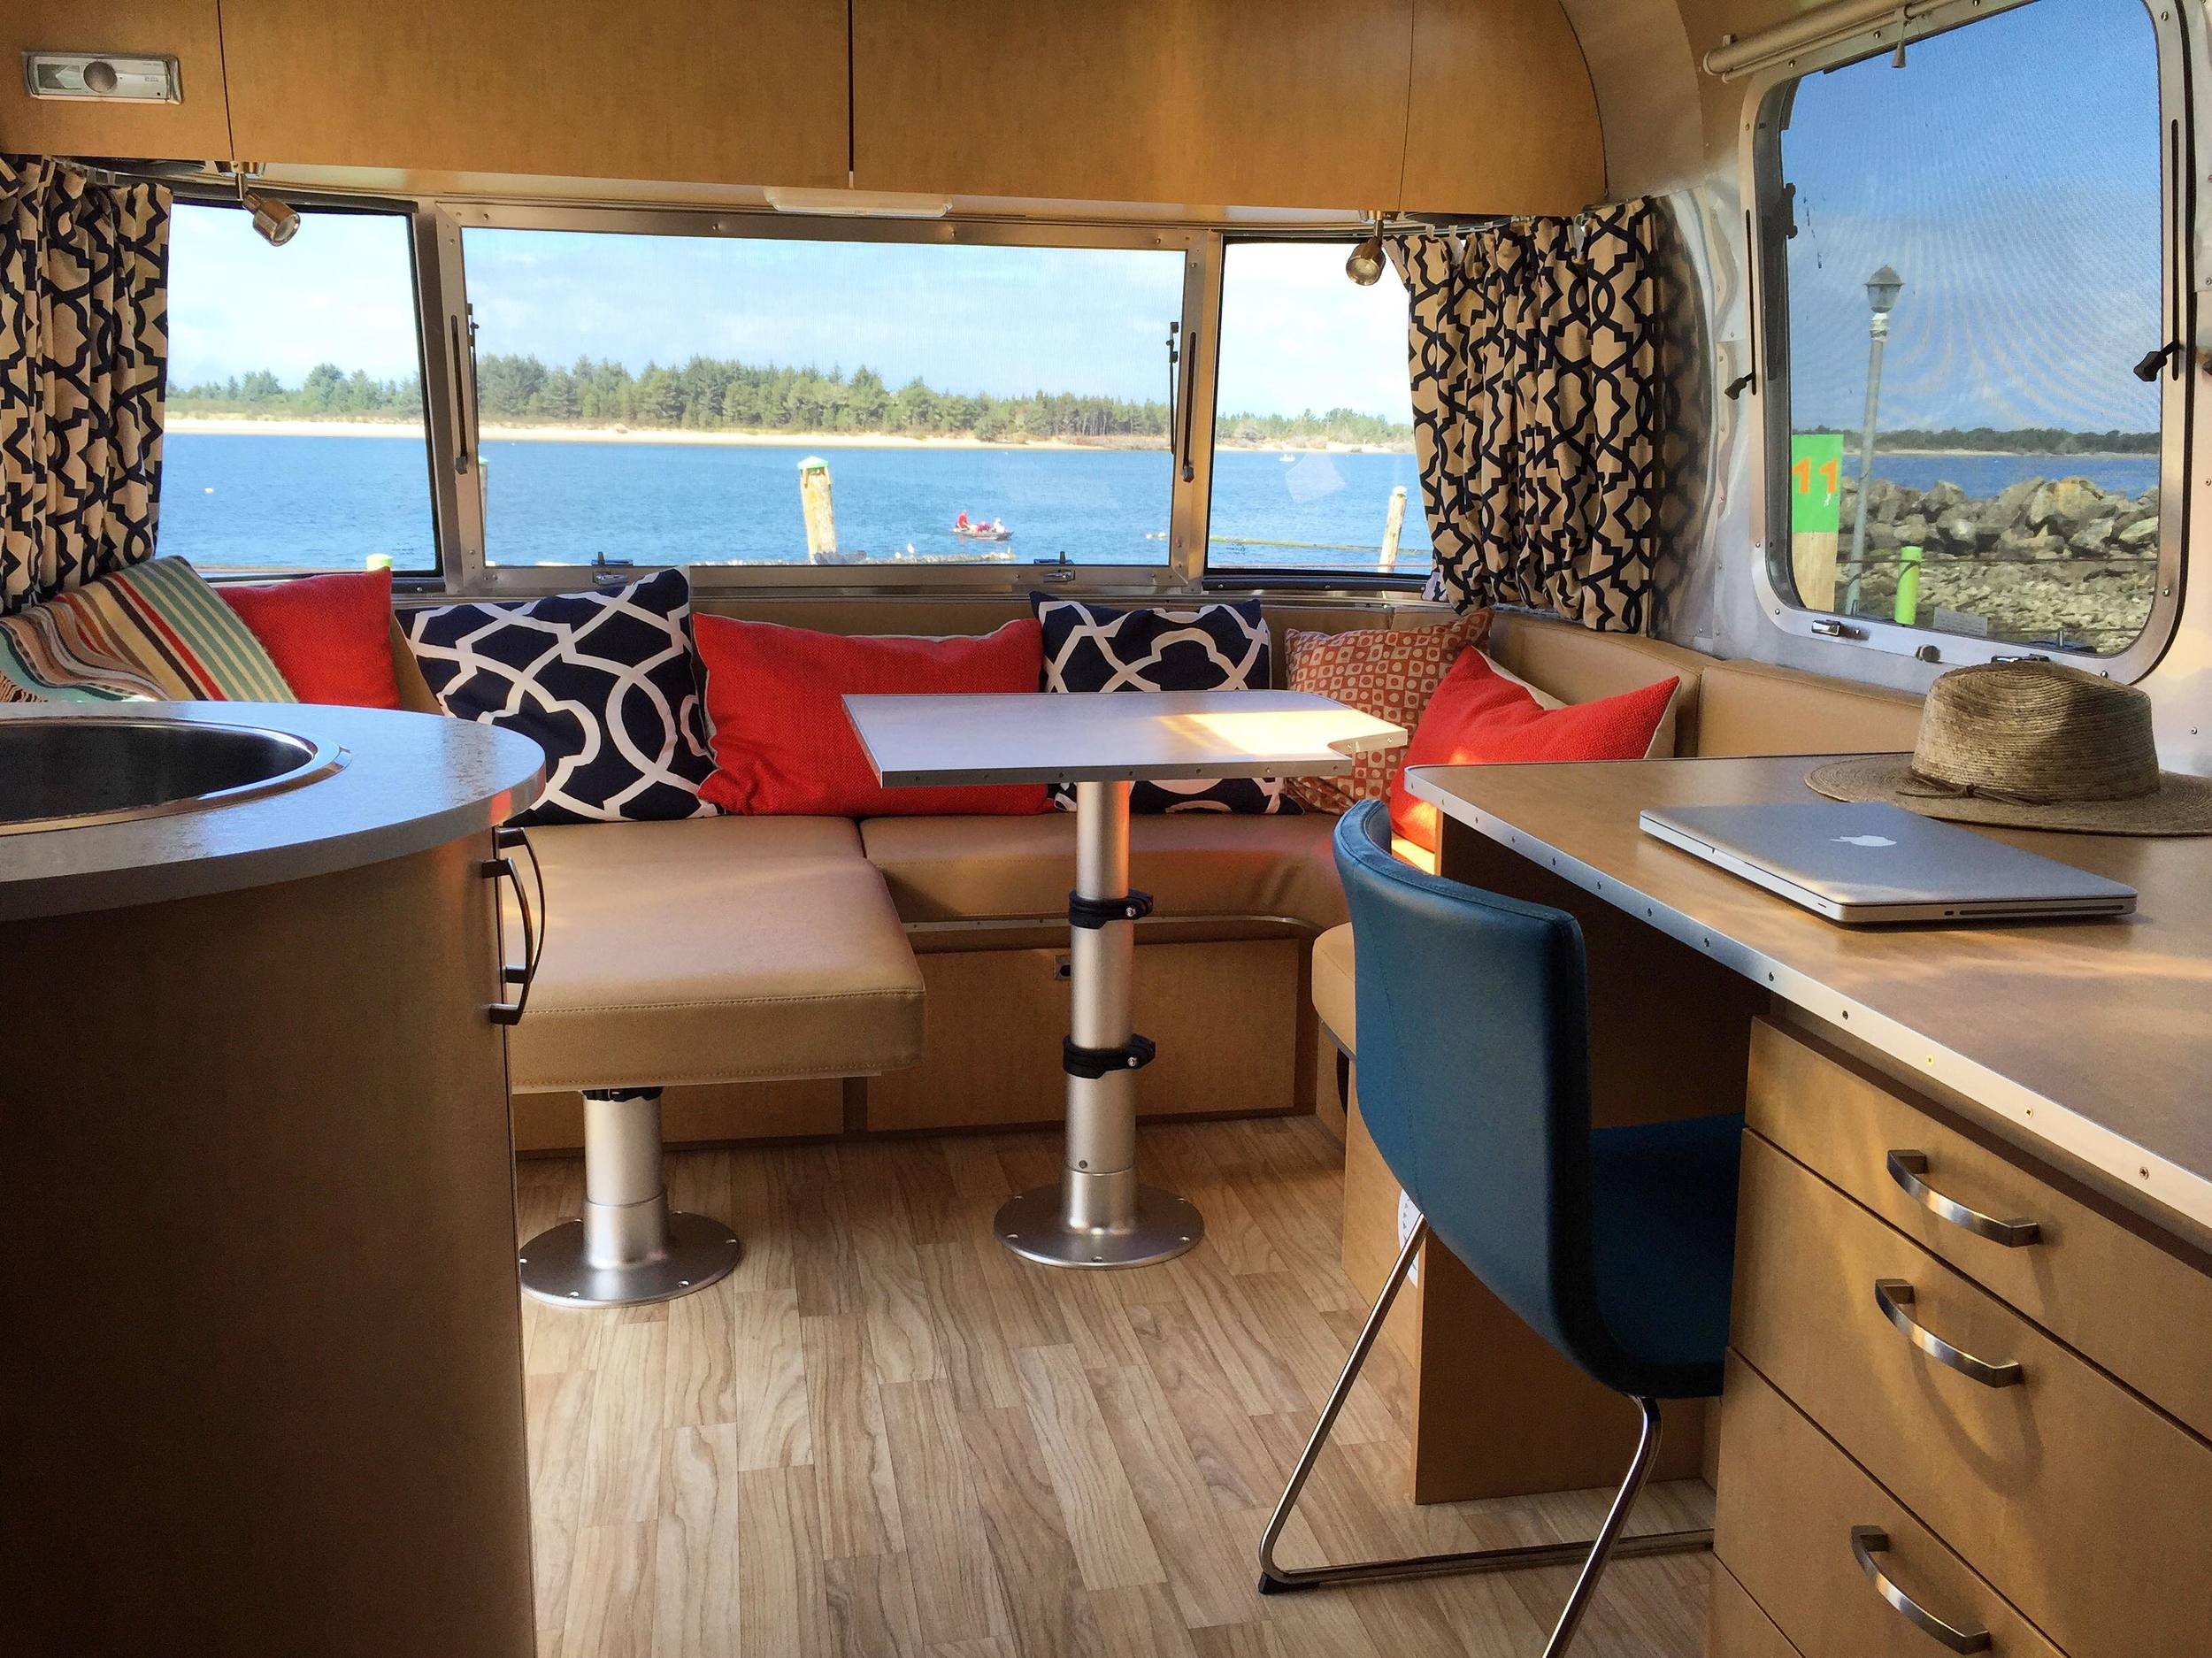 Our first weekend with the Airstream at Kelly's Brighton Marina on Nehalem Bay, Oregon Coast.